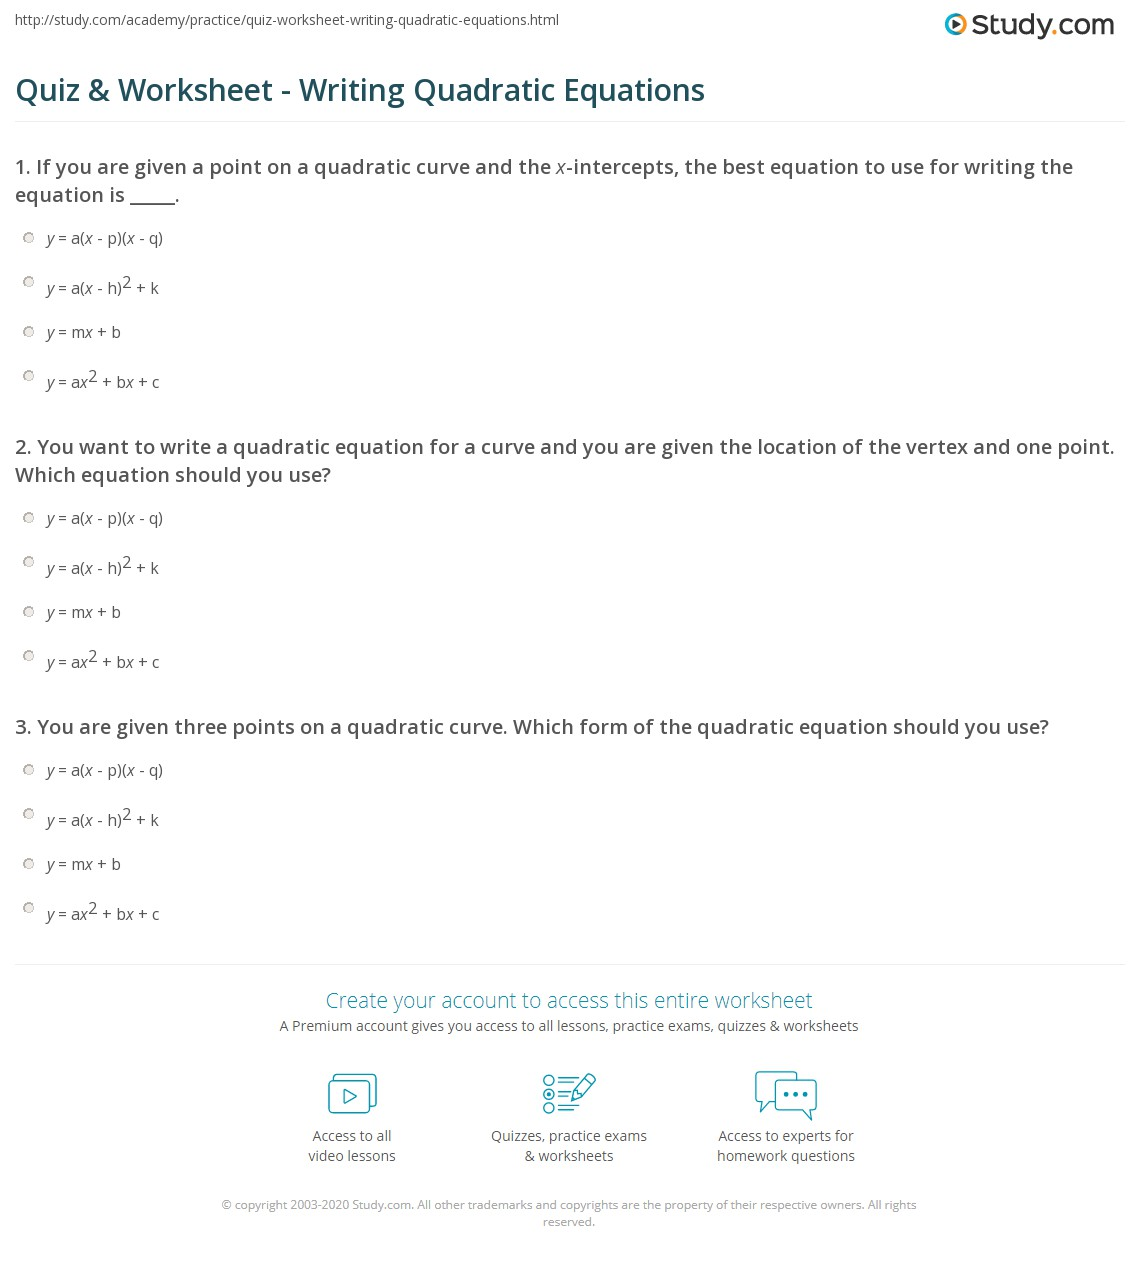 Quiz & Worksheet - Writing Quadratic Equations | Study.com